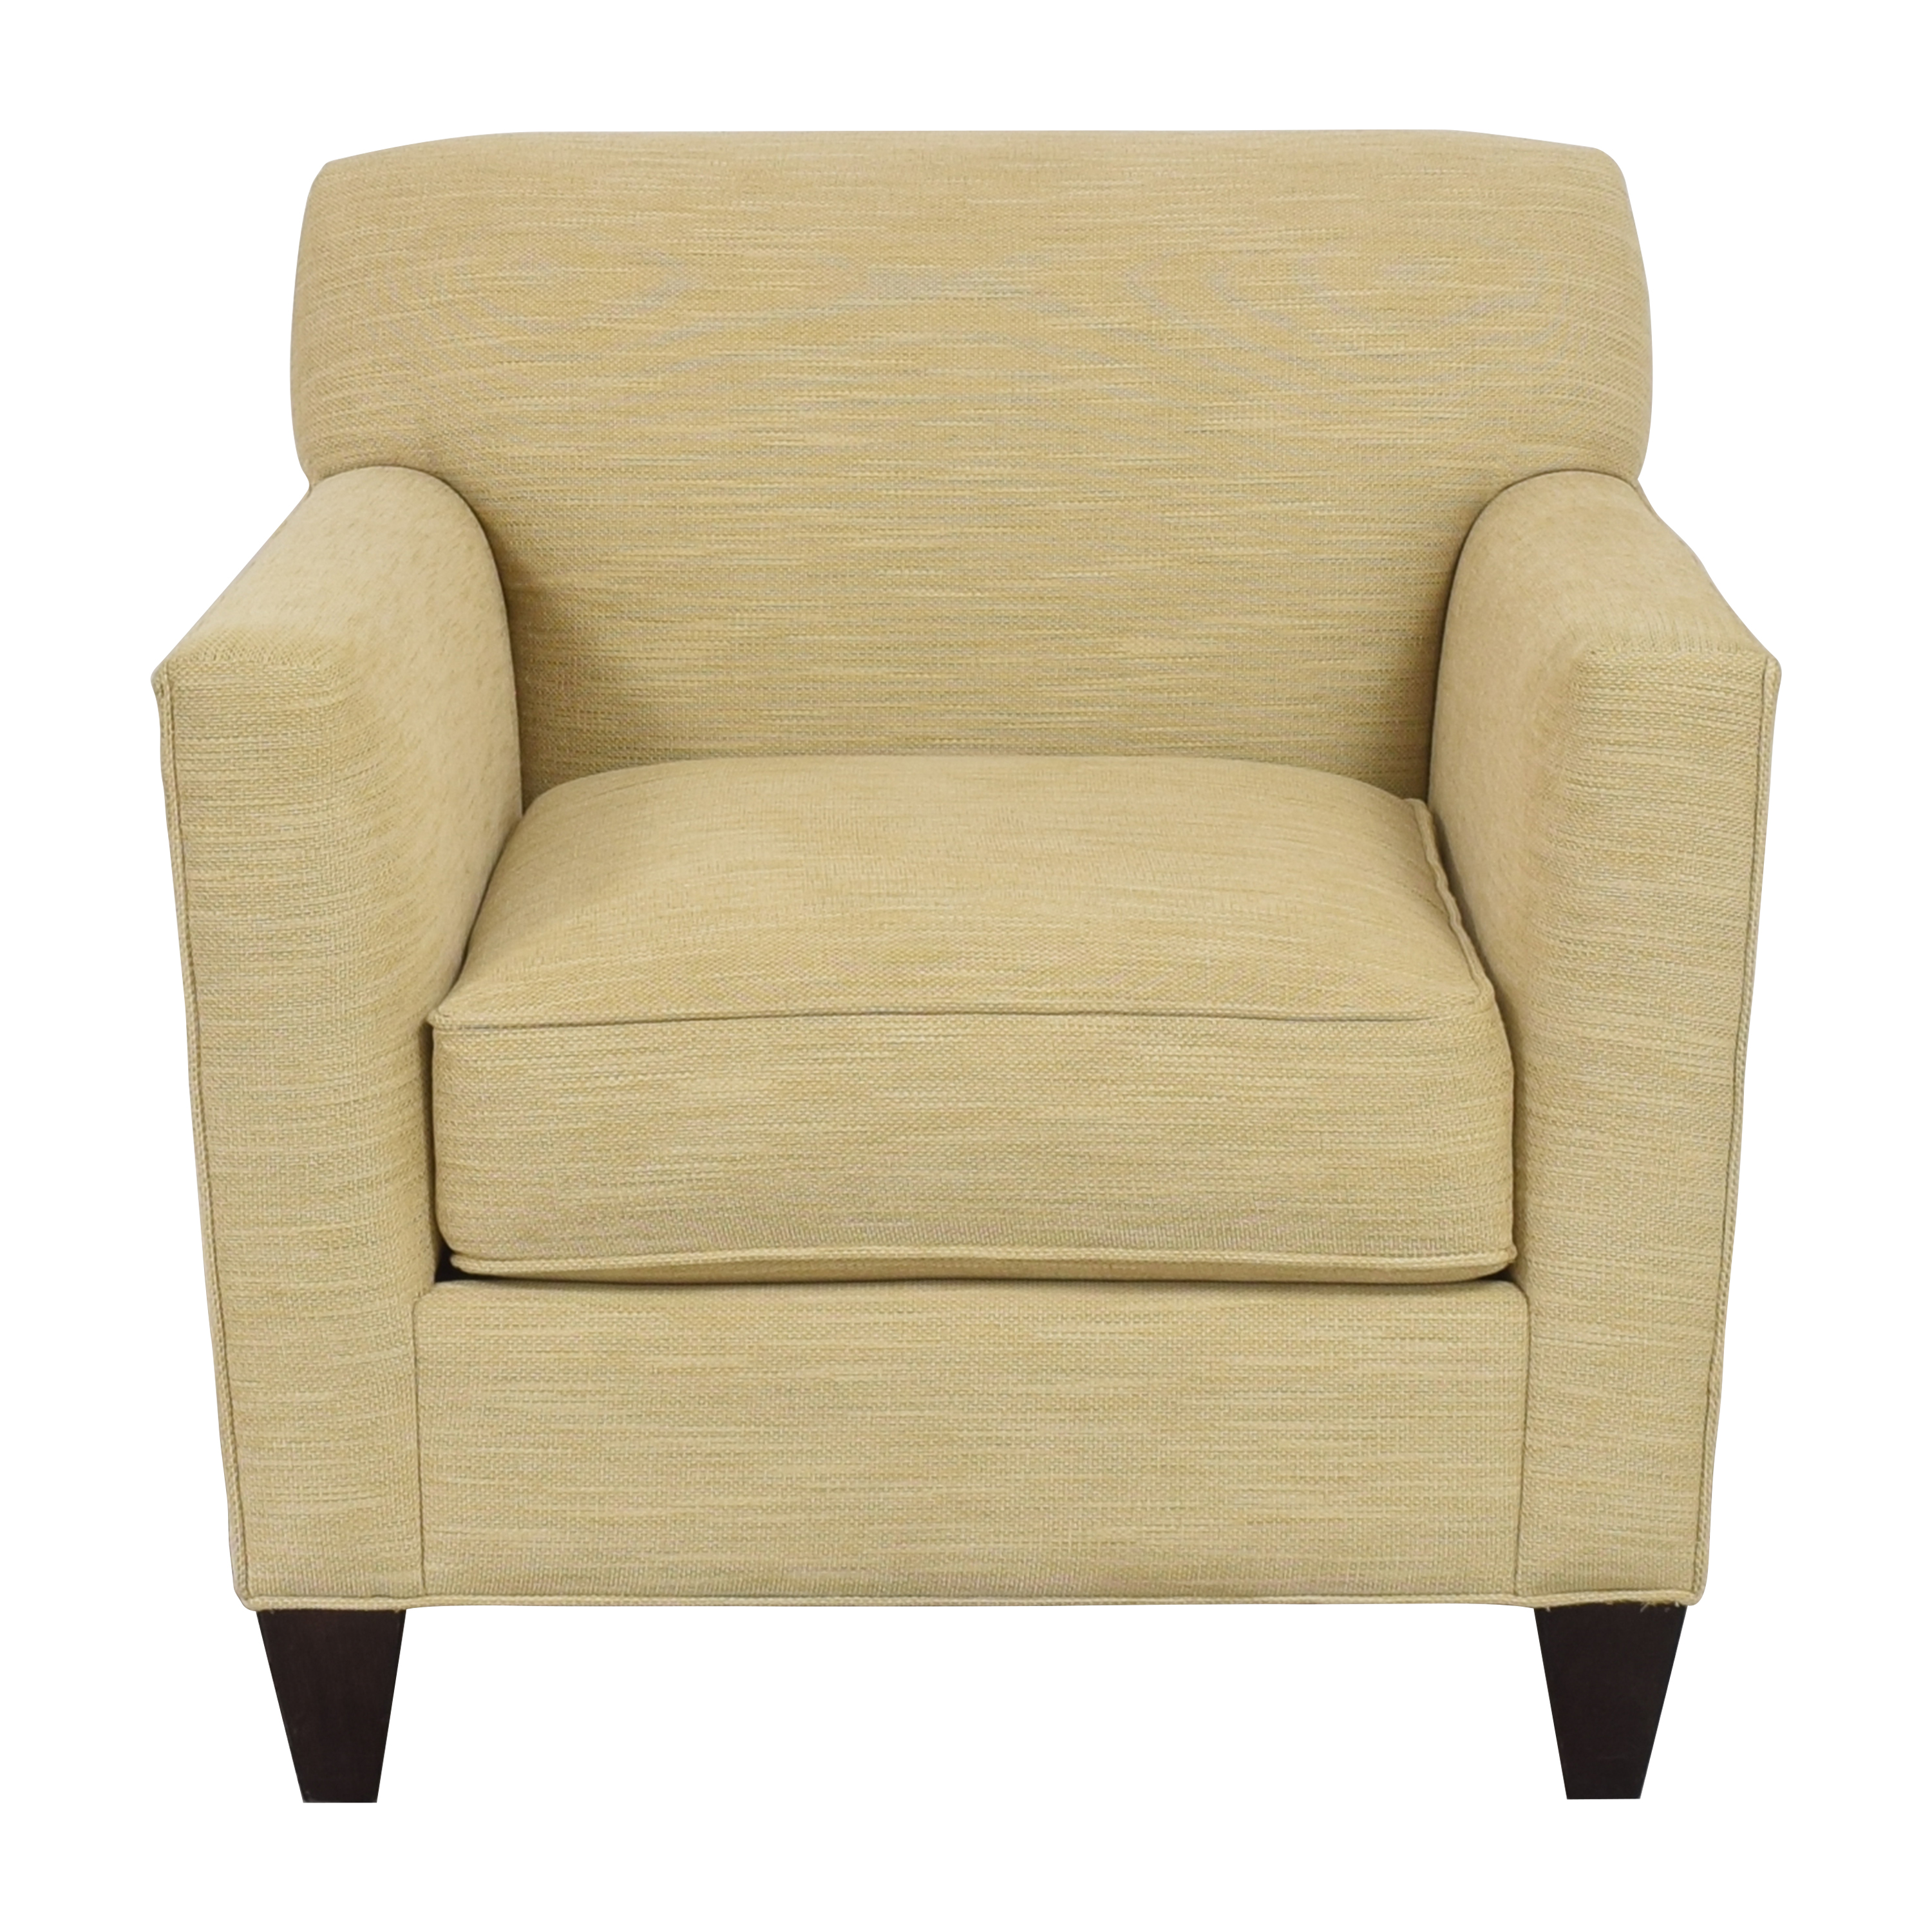 Crate & Barrel Crate & Barrel Hennessy Chair nyc